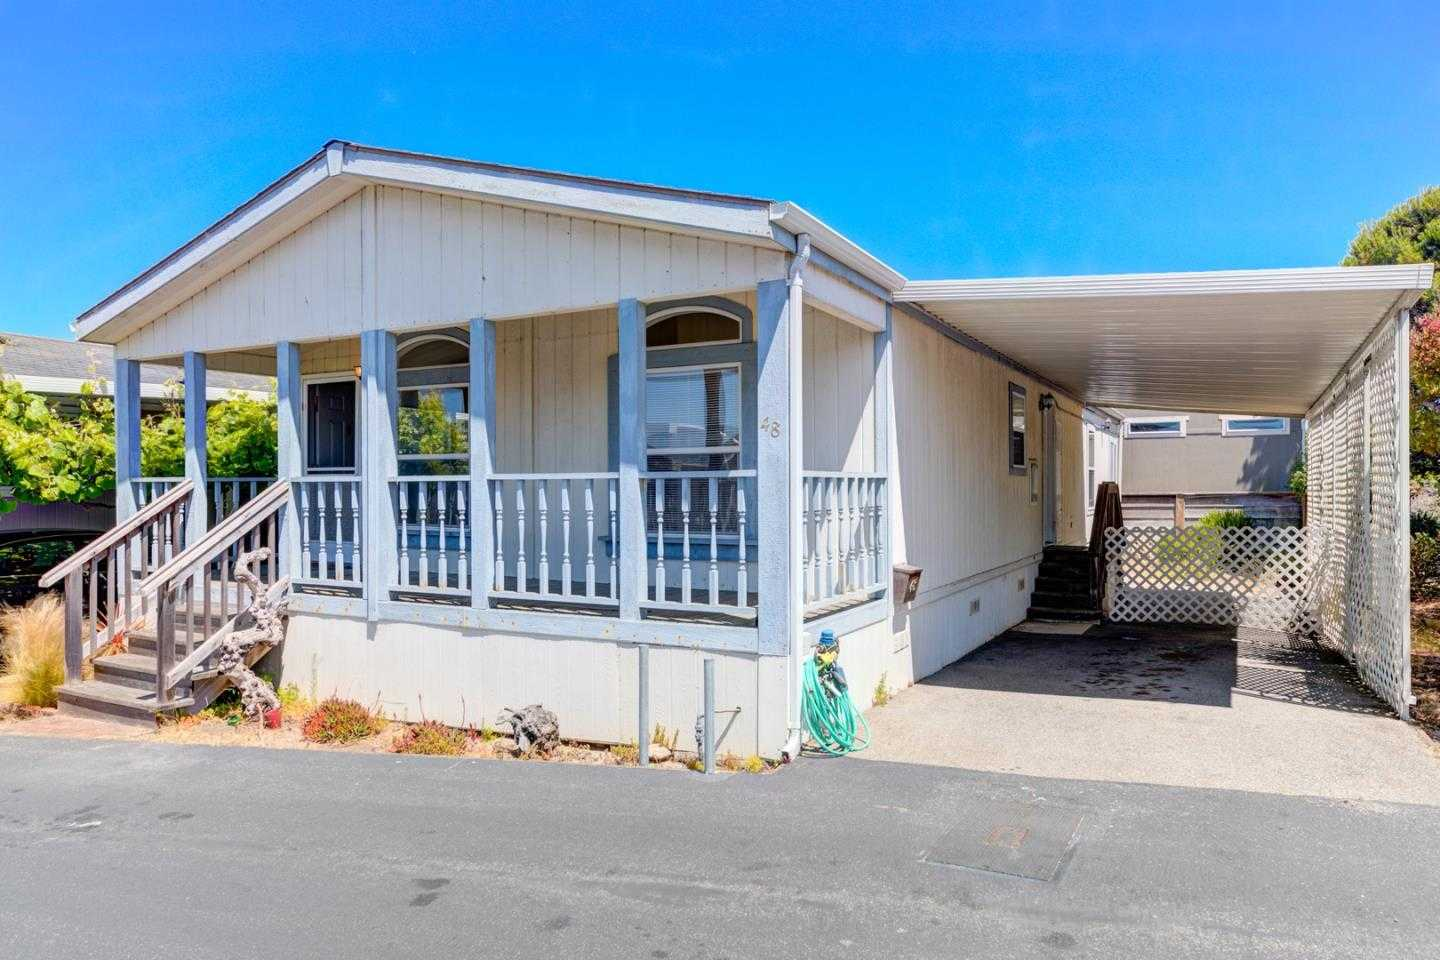 $450,000 - 3Br/2Ba -  for Sale in Pacific Grove